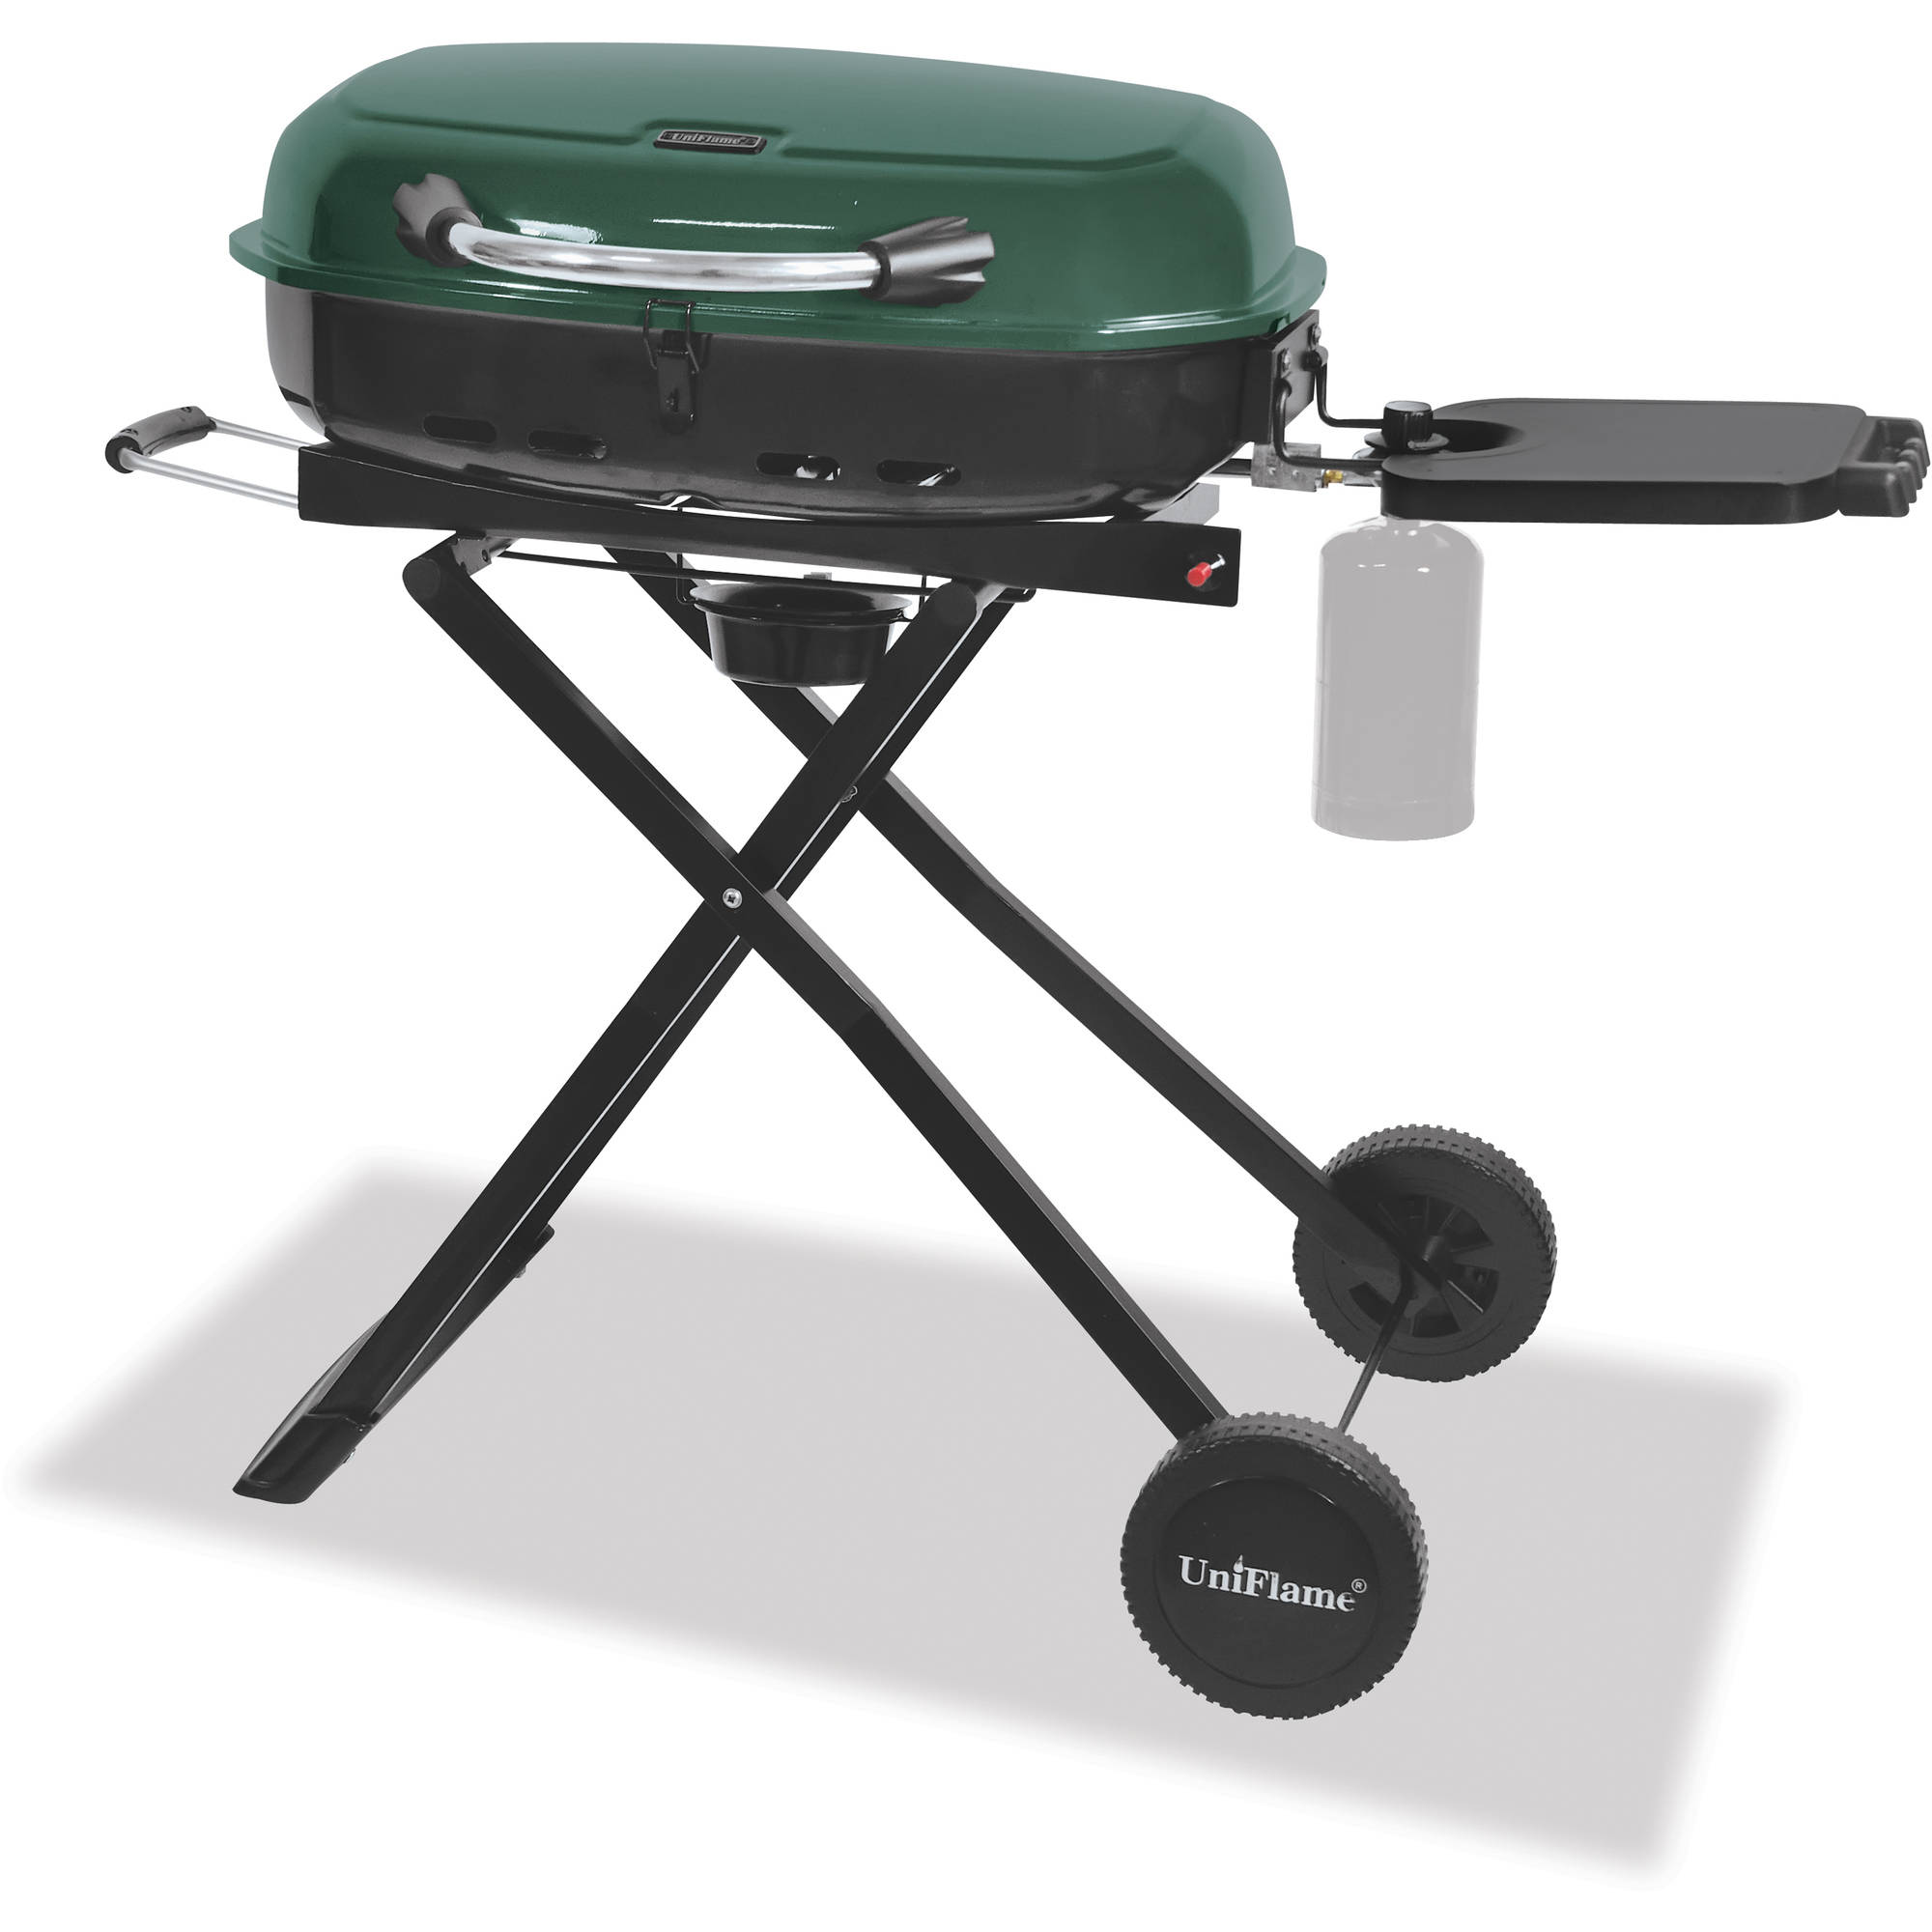 Costway 4 Burner Gas Porpane Grill Stainless Steel Outdoor Patio Cooking Bbq W Casters Com